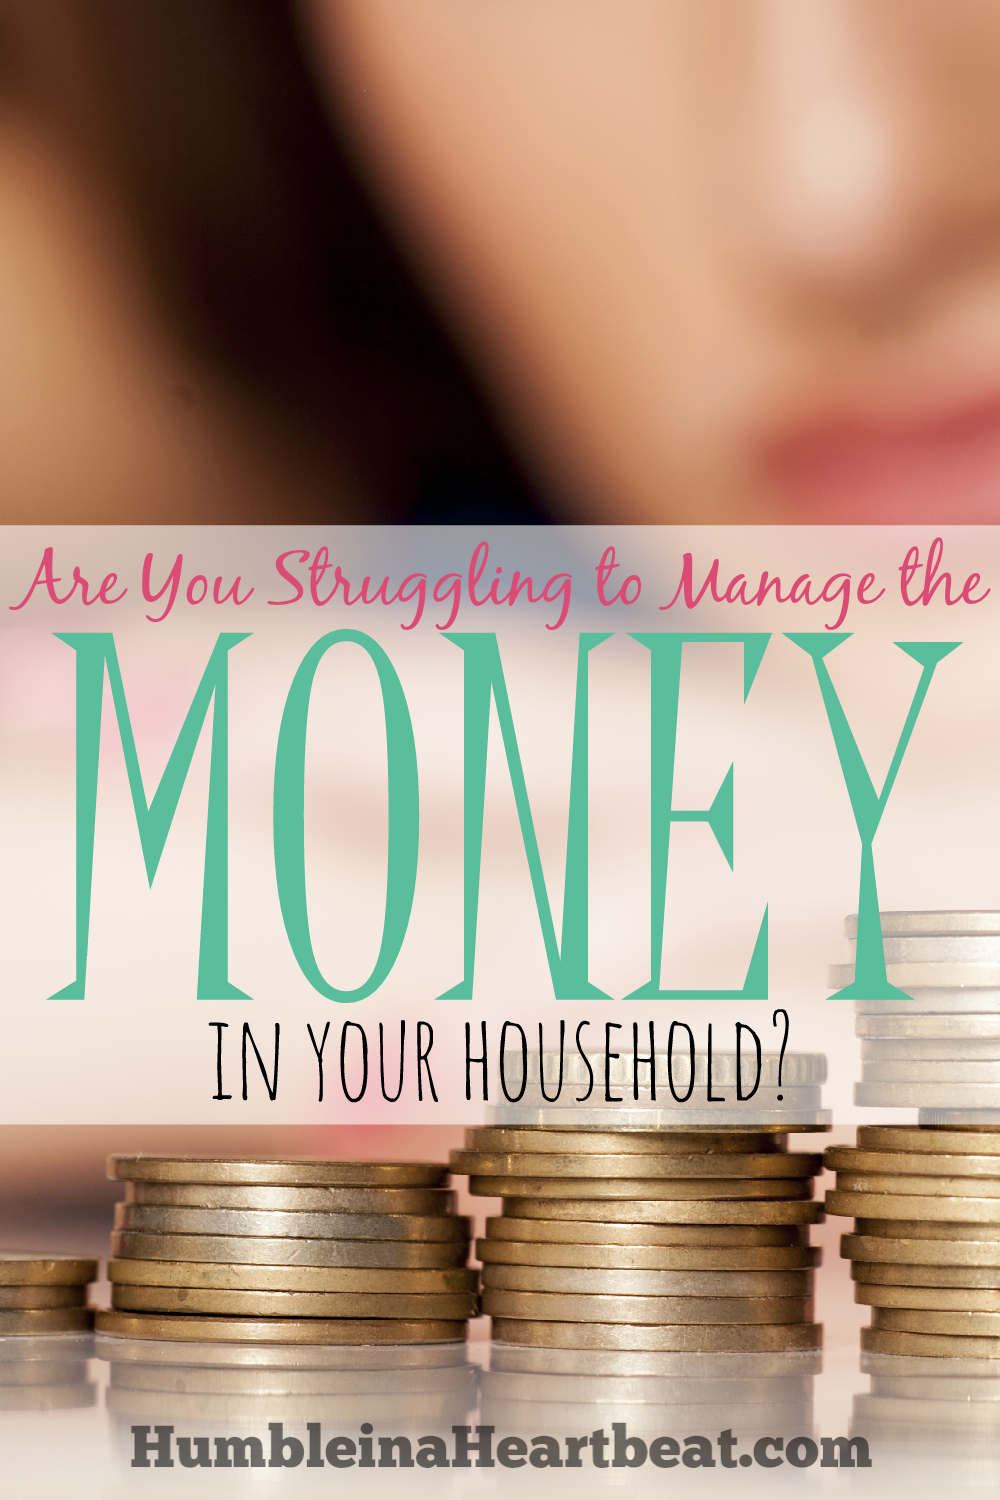 Taking care of the finances for your family is a tough job when there are so many other things to do. These are my struggles. Maybe you can relate.